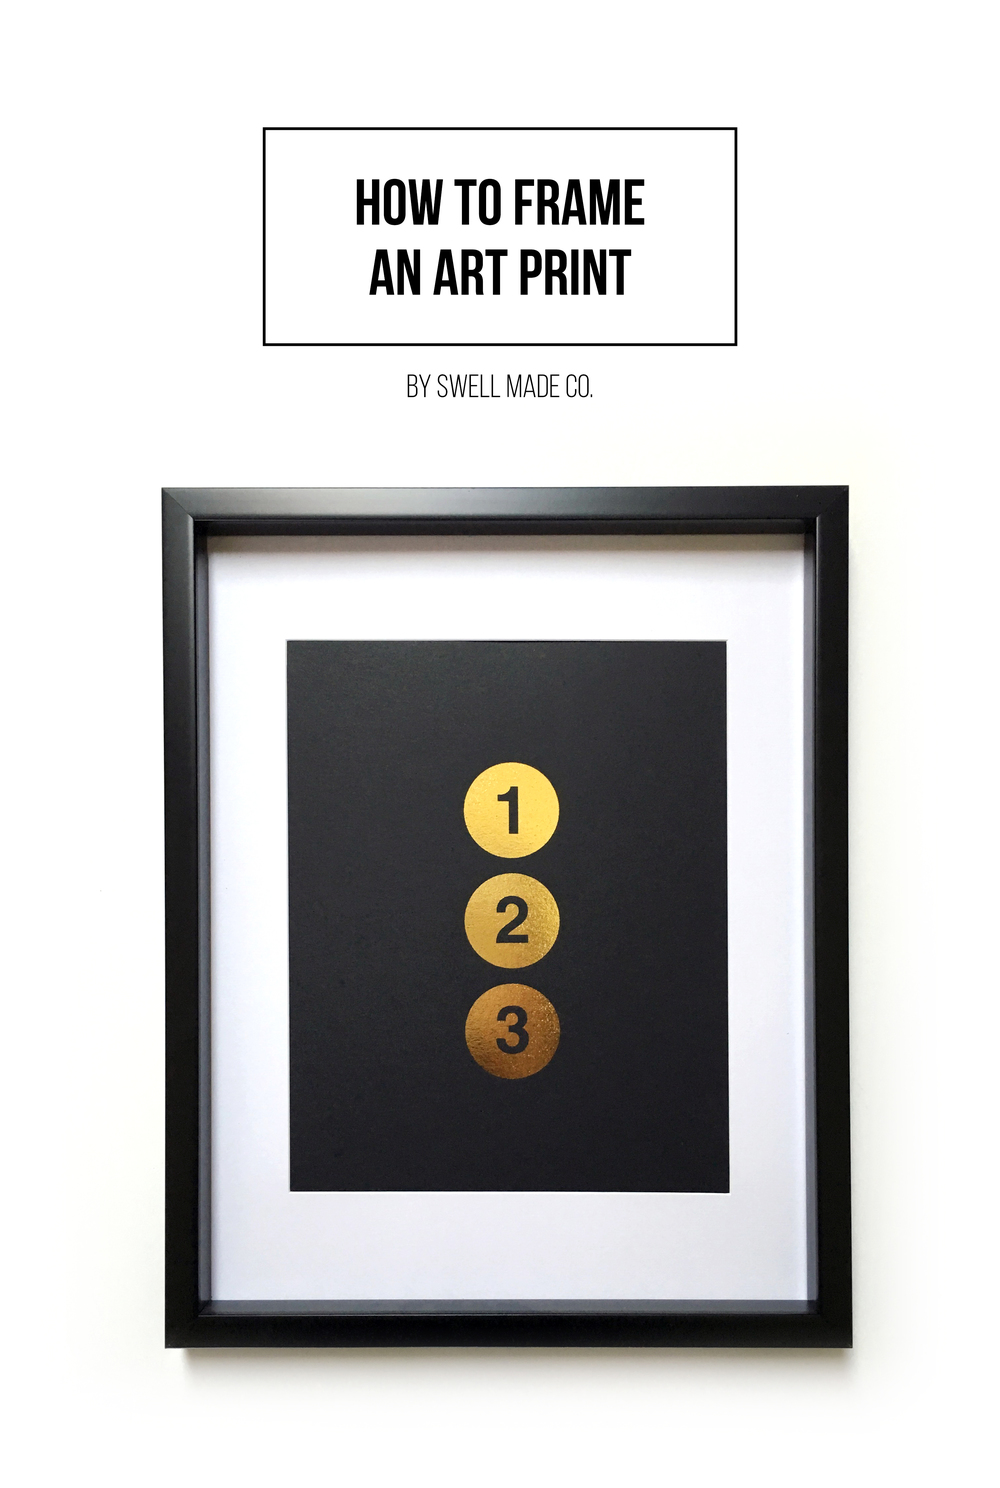 Framing an art print can be as easy as 1-2-3. A guide by Swell Made Co.